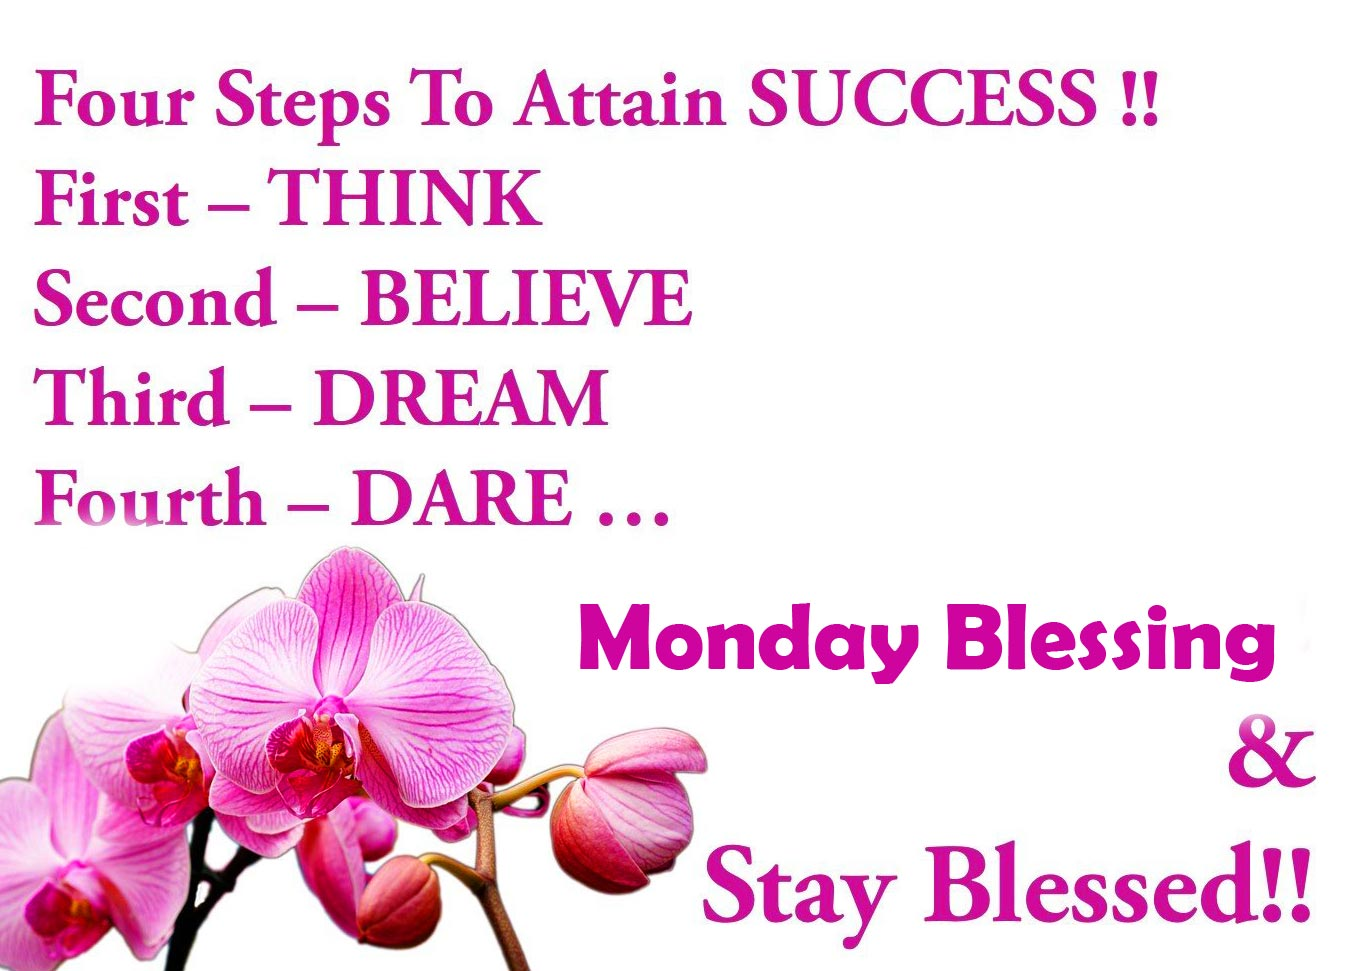 Monday Blessing with Stay Blessed Wish